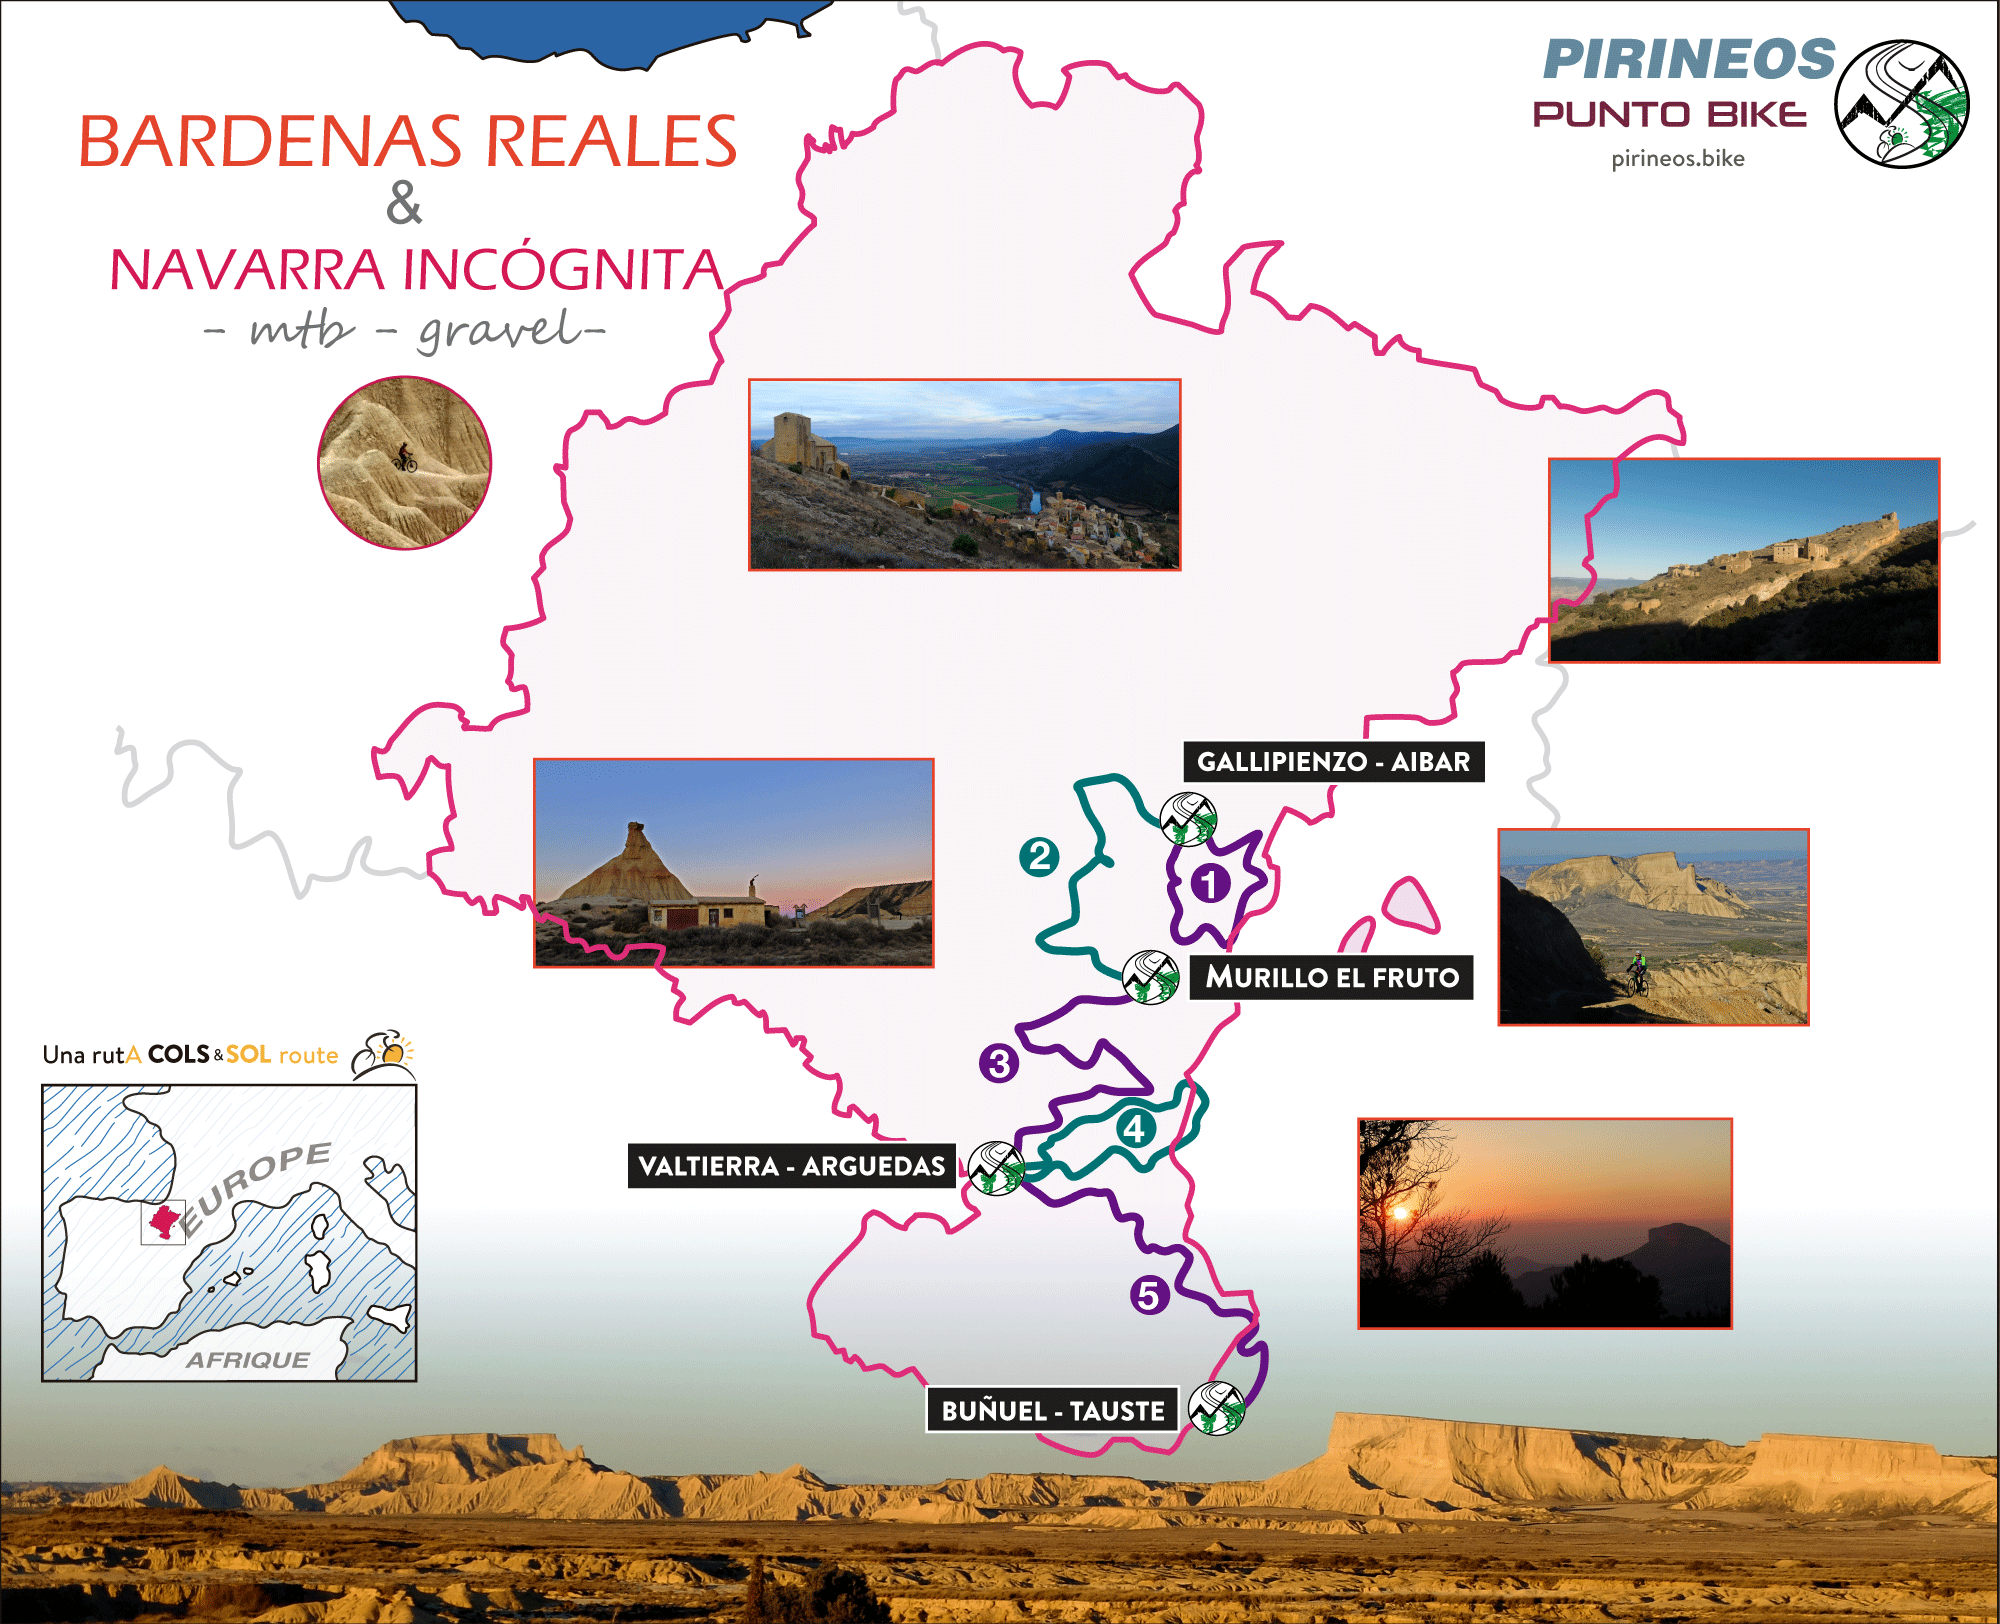 Bardenas-Navarra-incognita-bike-map